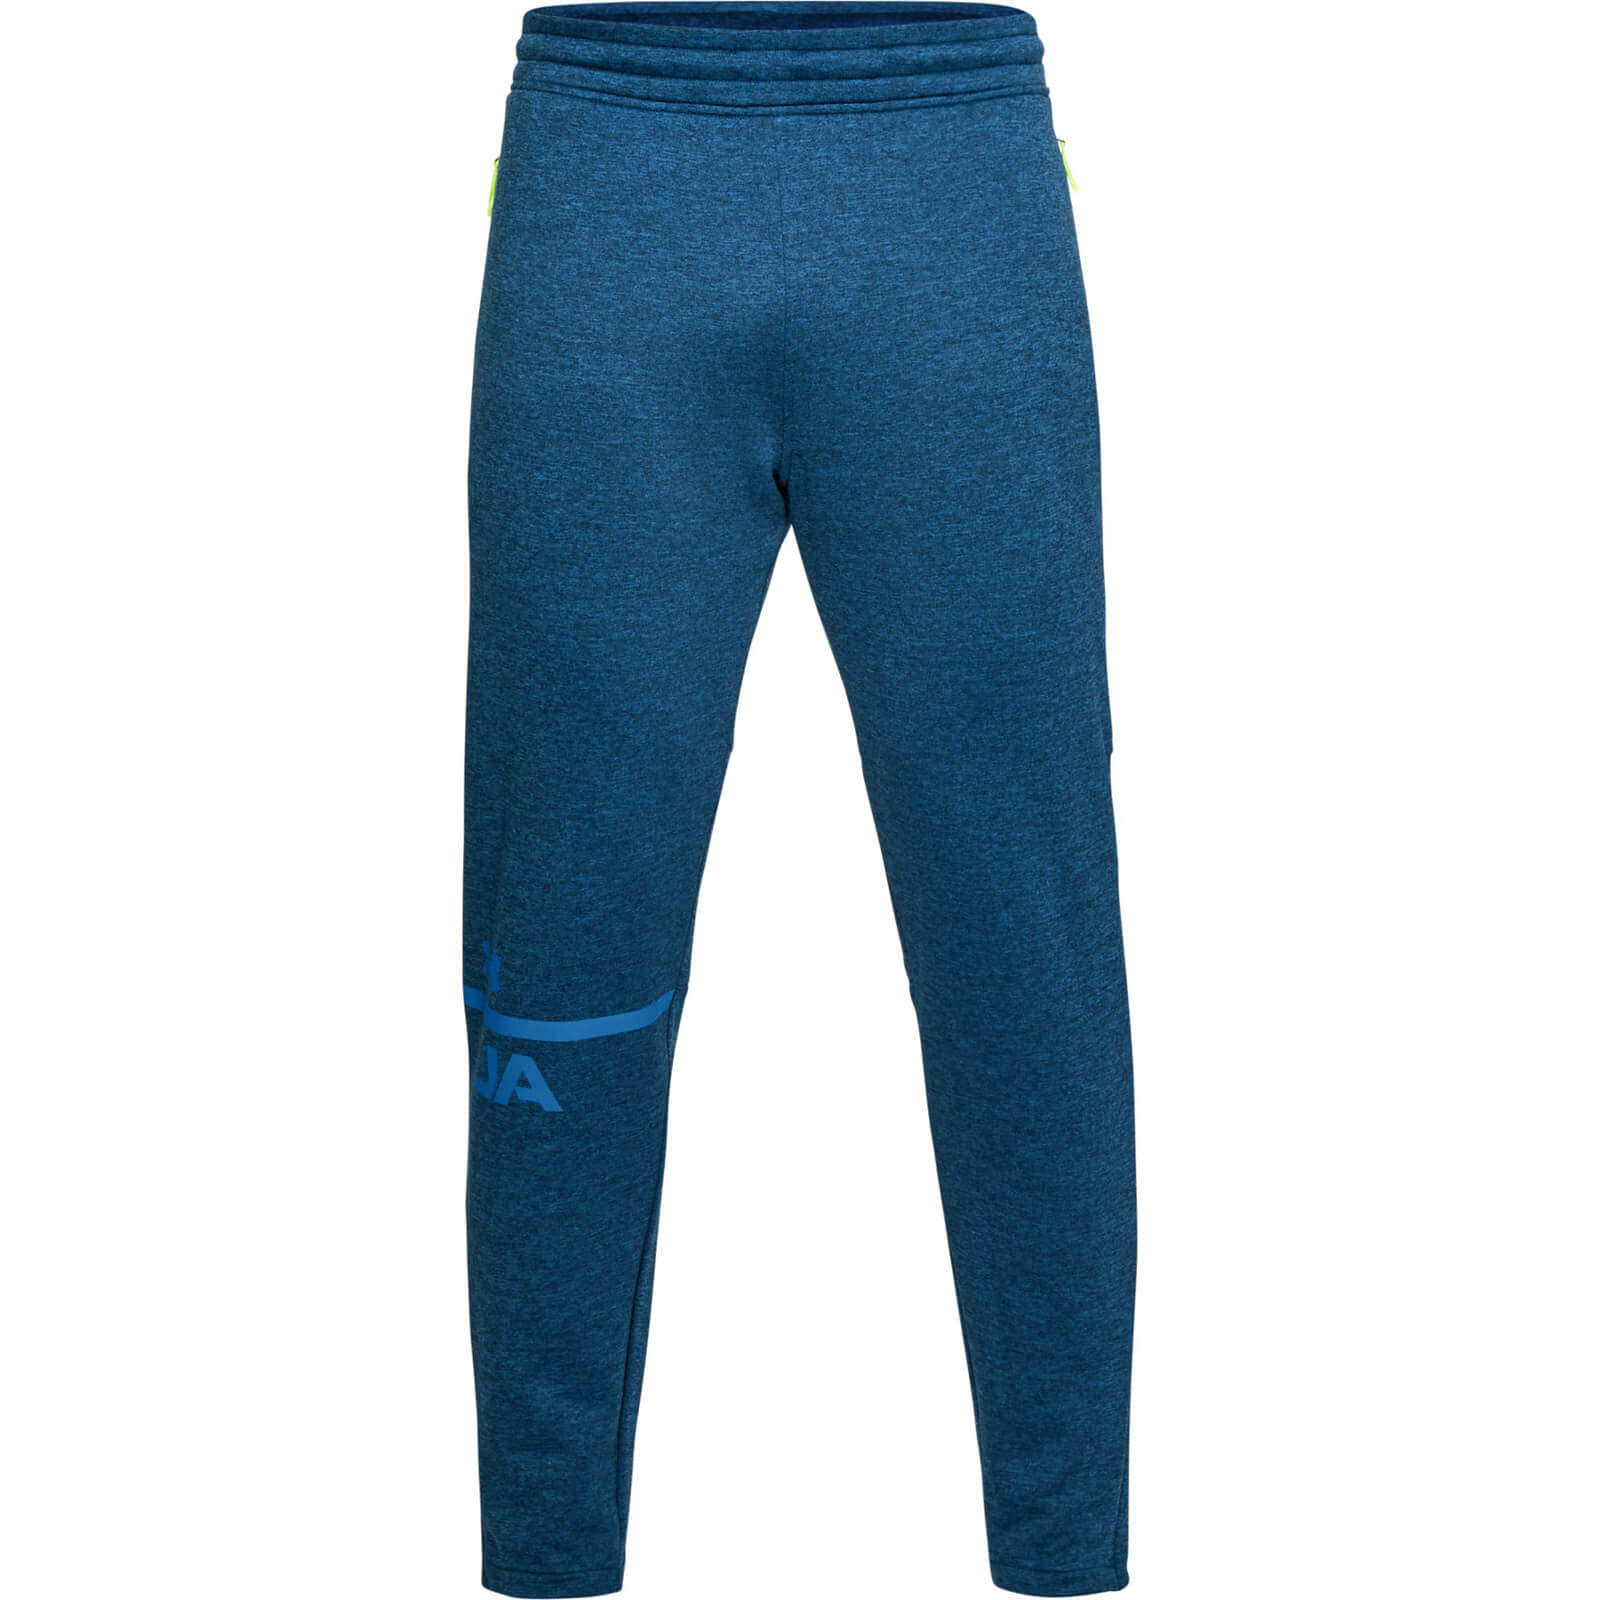 83ee5f0c36e Under Armour Men s MK1 Terry Tapered Joggers - Blue Sports   Leisure ...